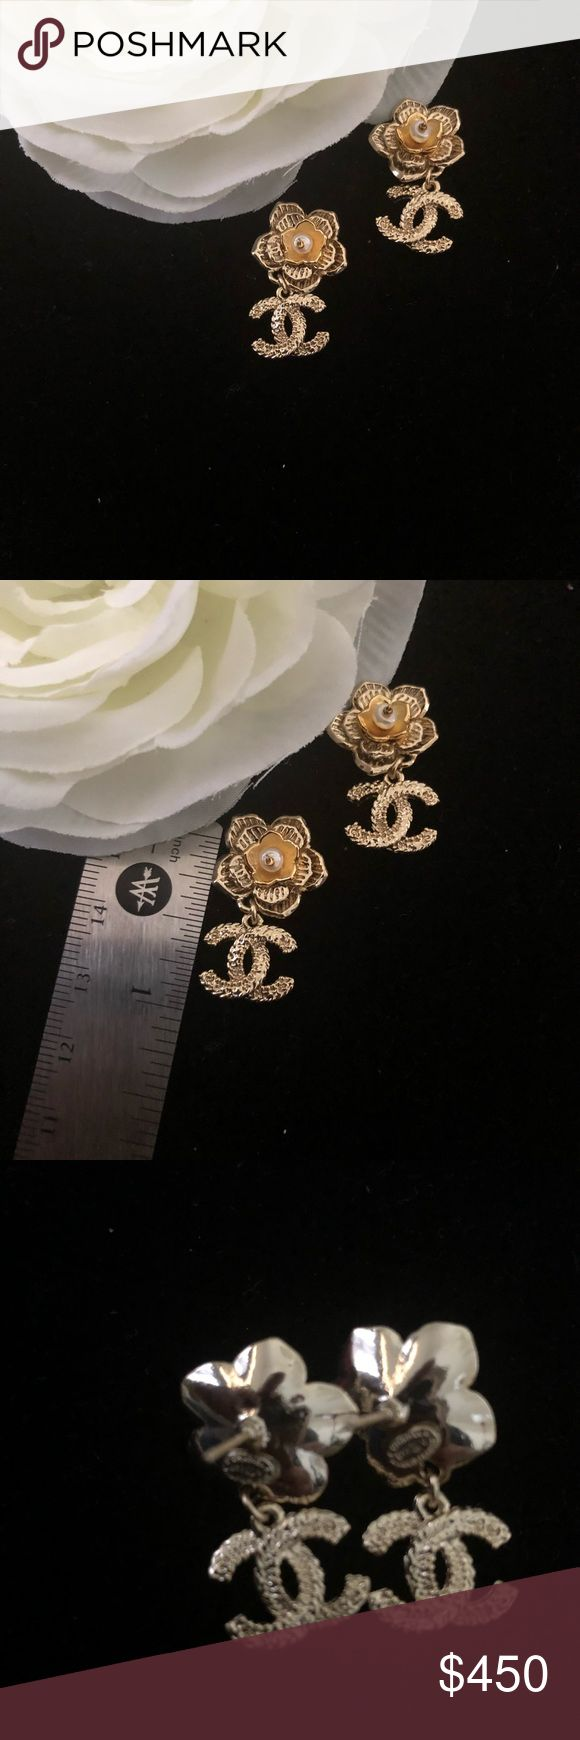 Chanel Flower Earrings Chanel Flower Earrings CHANEL Jewelry Earrings